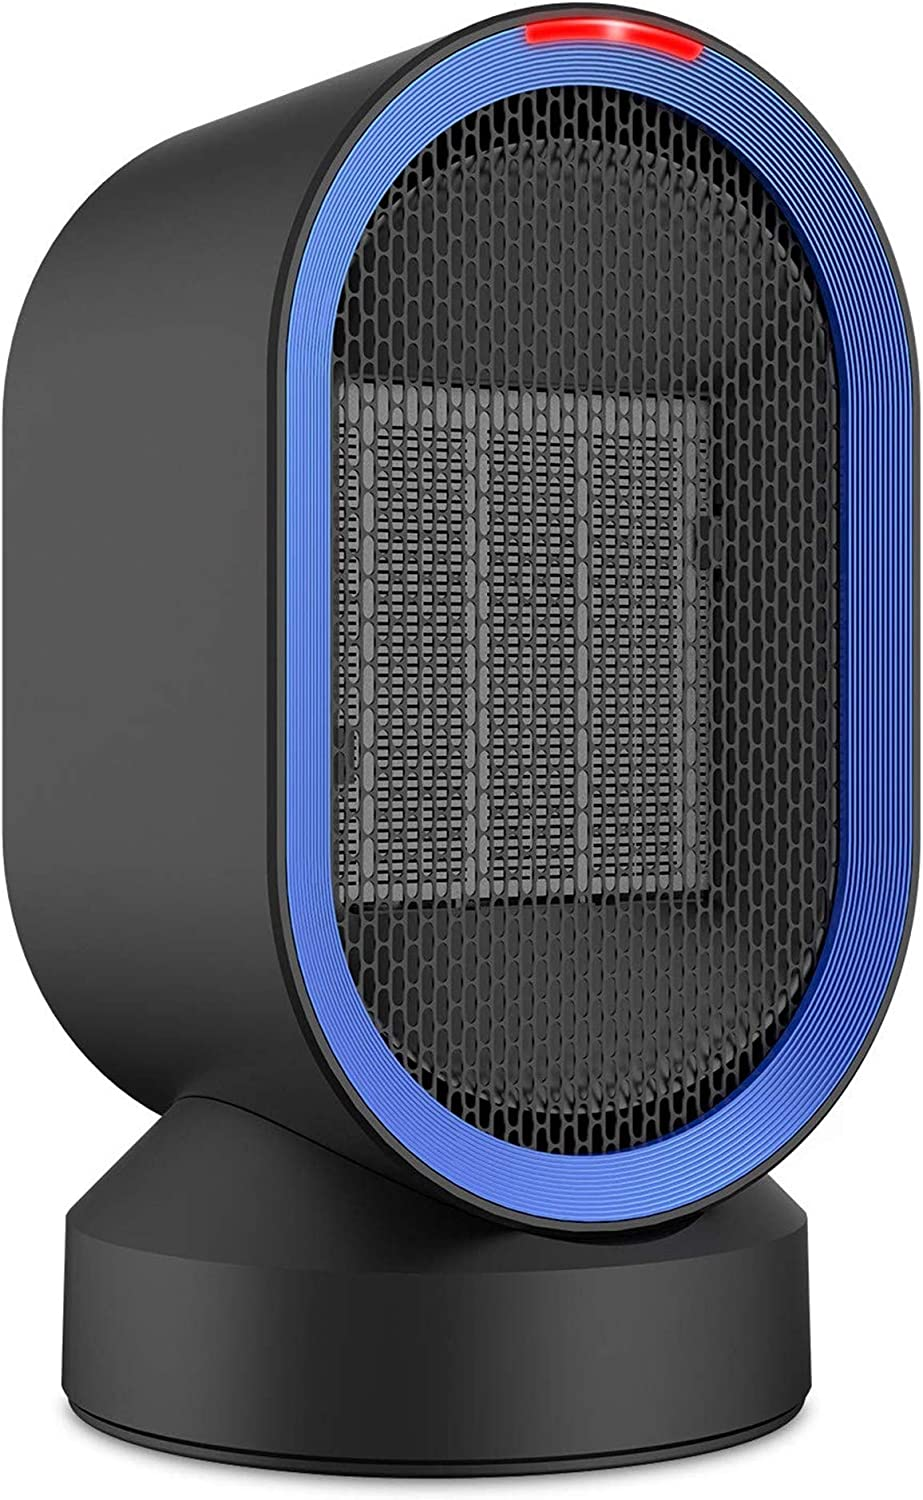 Ceramic Space Heater, ETL Listed Portable Mini Desktop Heater Indoor Use, 2s Quick Heat-up, Ultra Quite, Auto-Oscillation for Office Table Home Dorm,600W